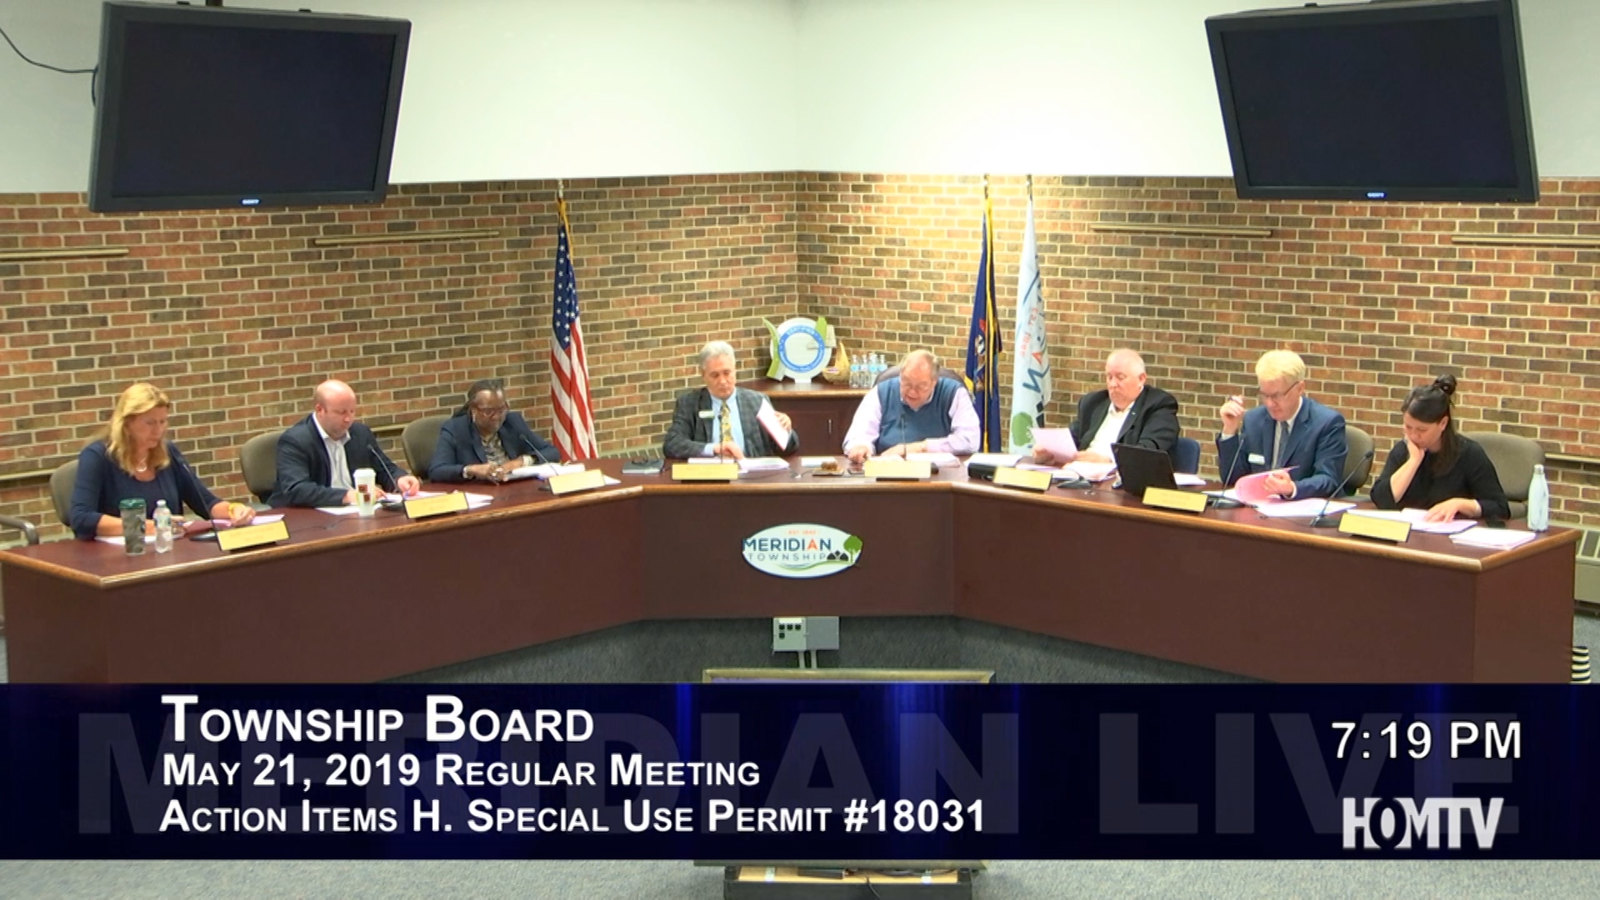 Red Cedar Manor Requests Approved by Township Board